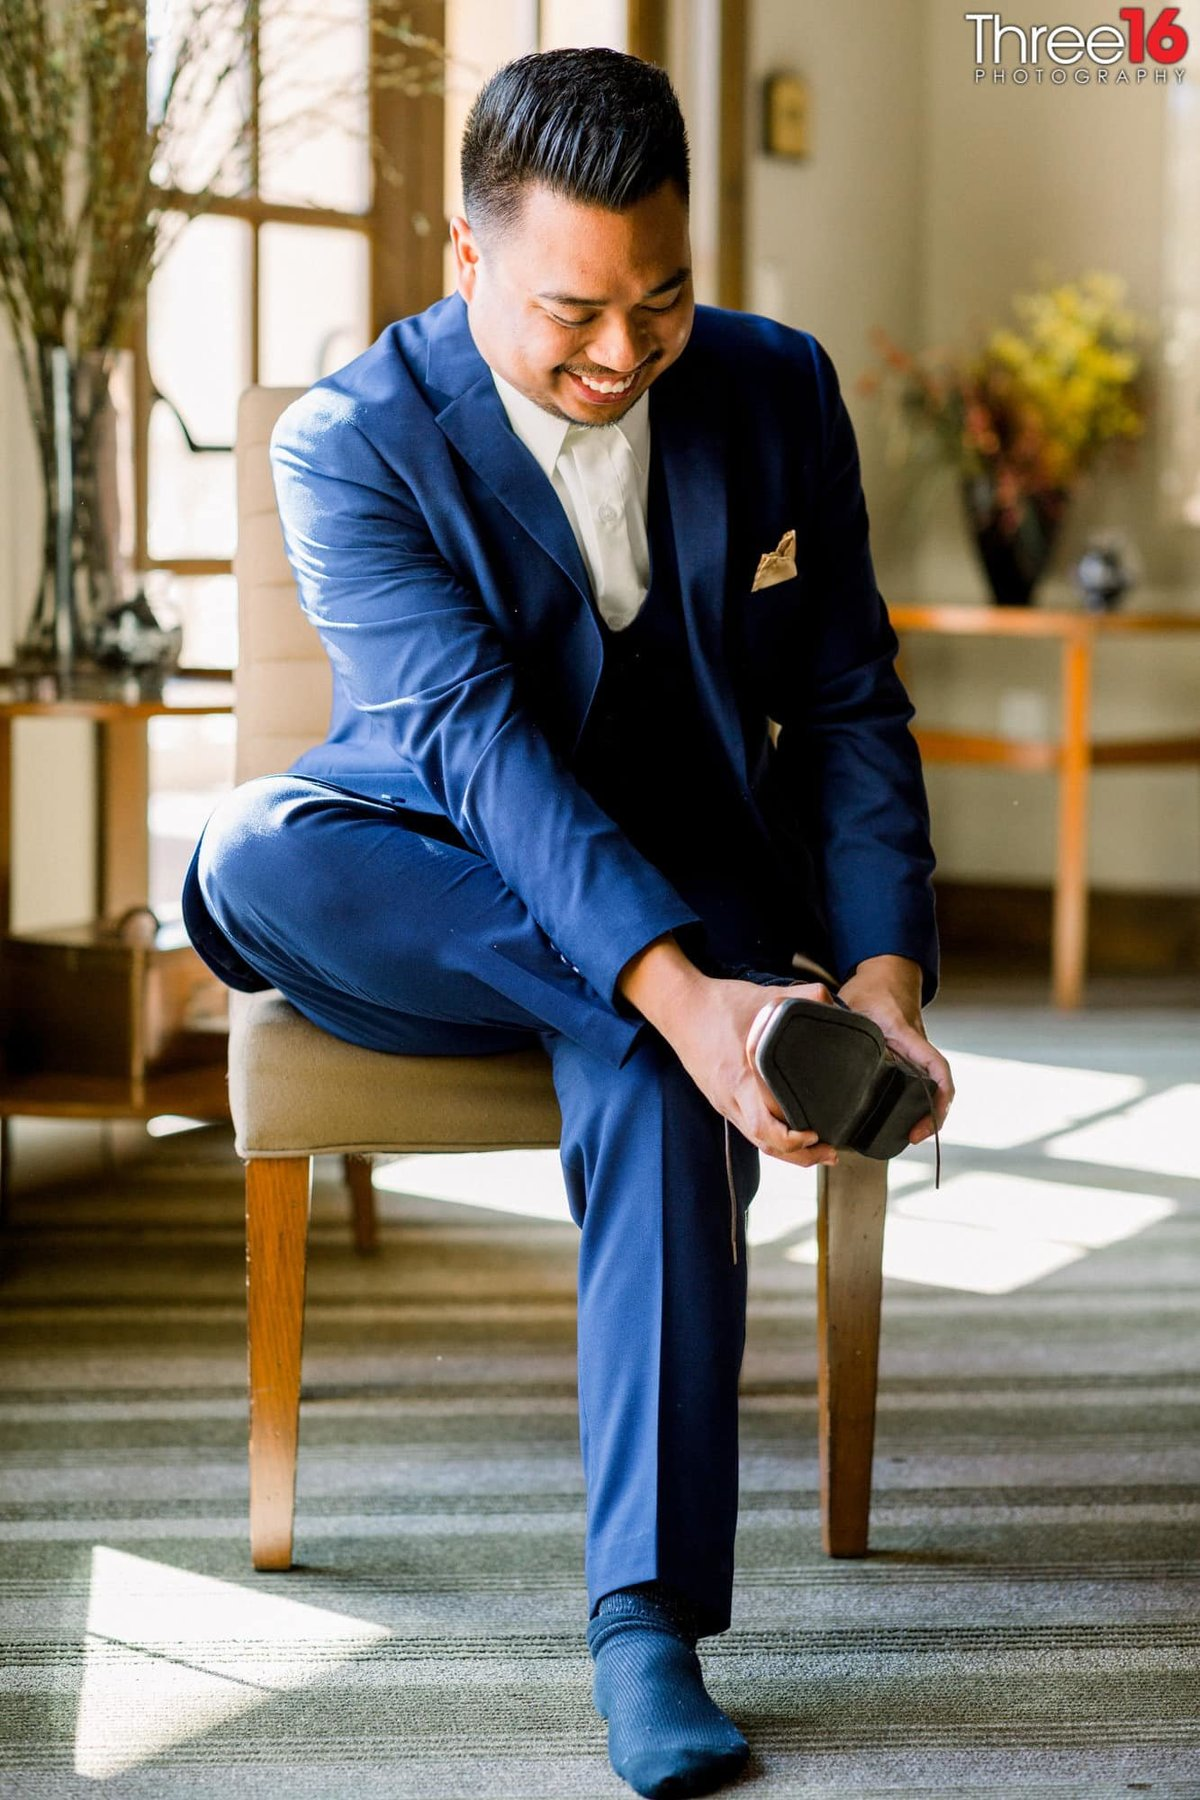 Groom putting on his shoes before the ceremony starts